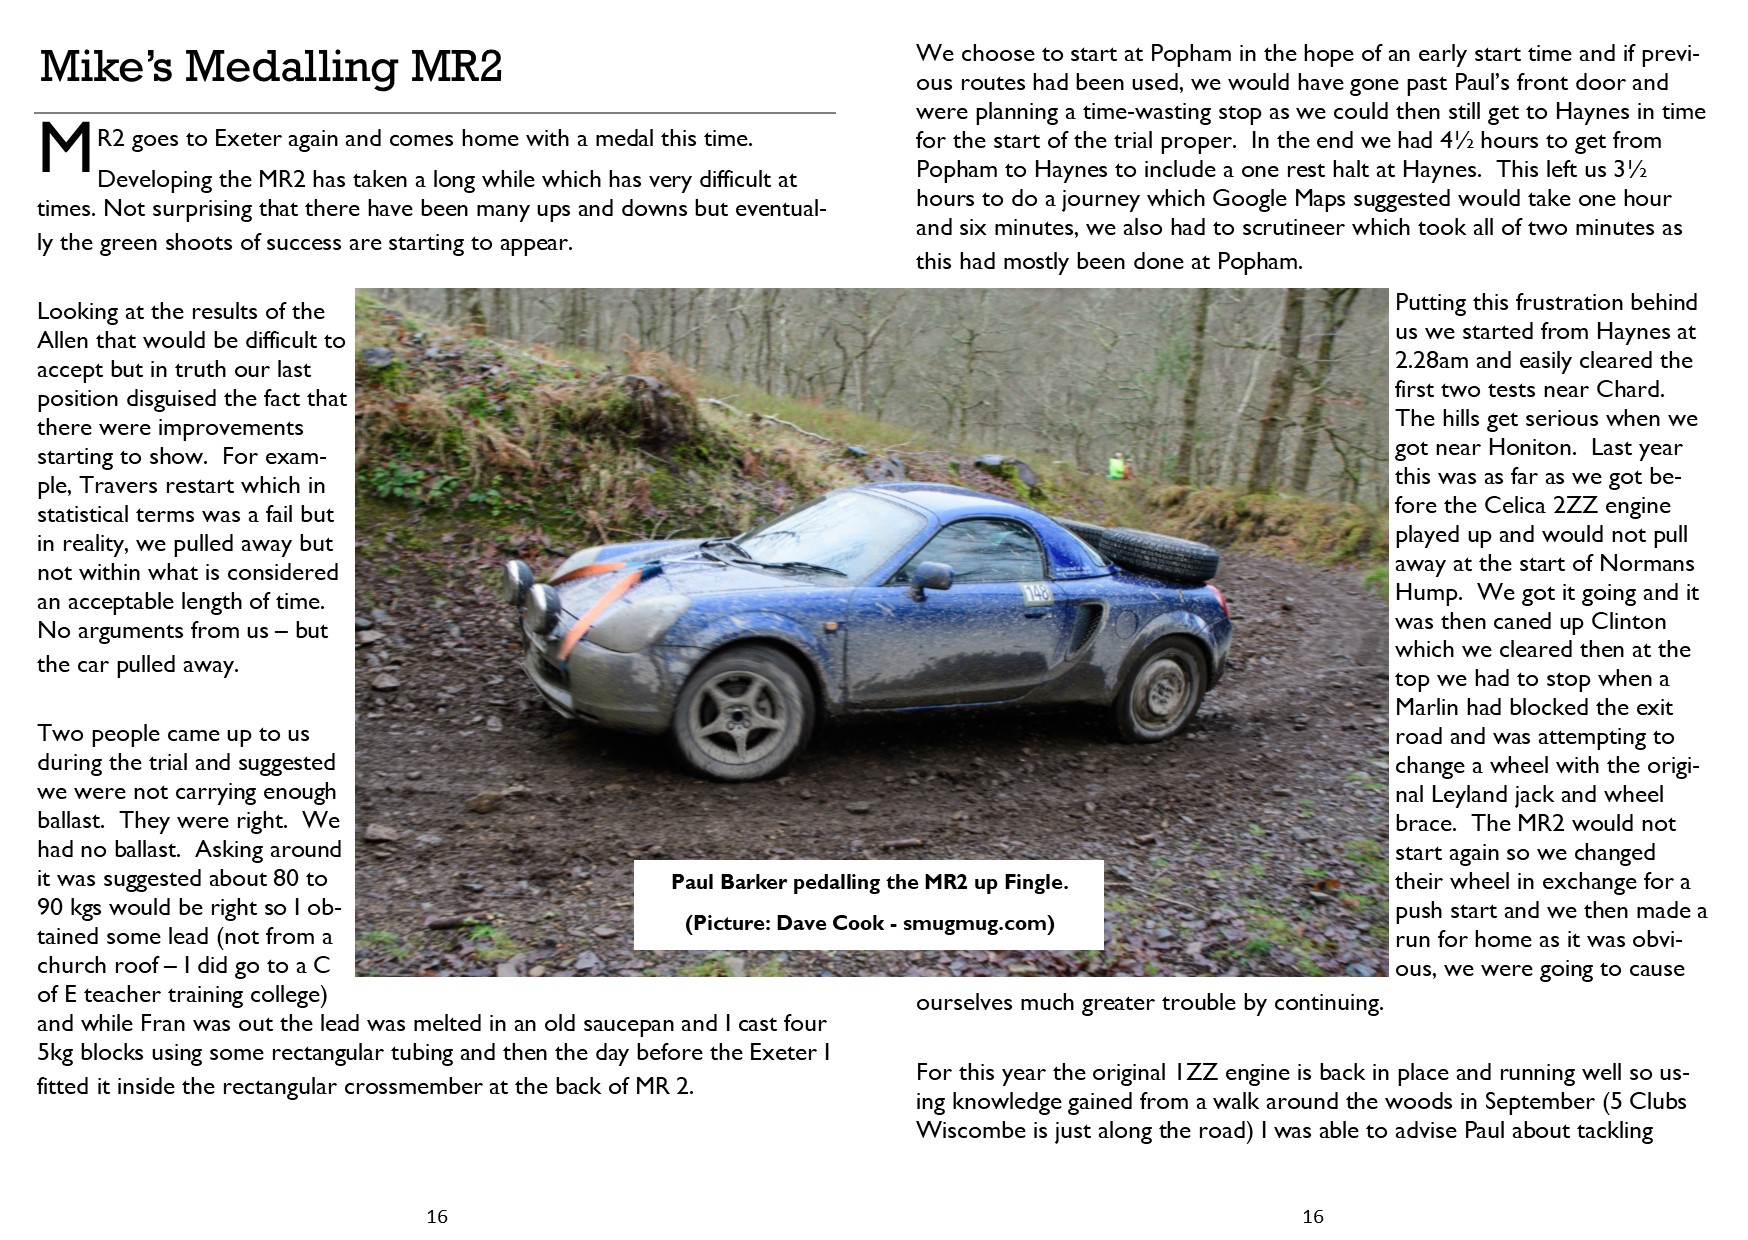 Driving Mirror Jan – Feb 2020 (Medalling MR2)